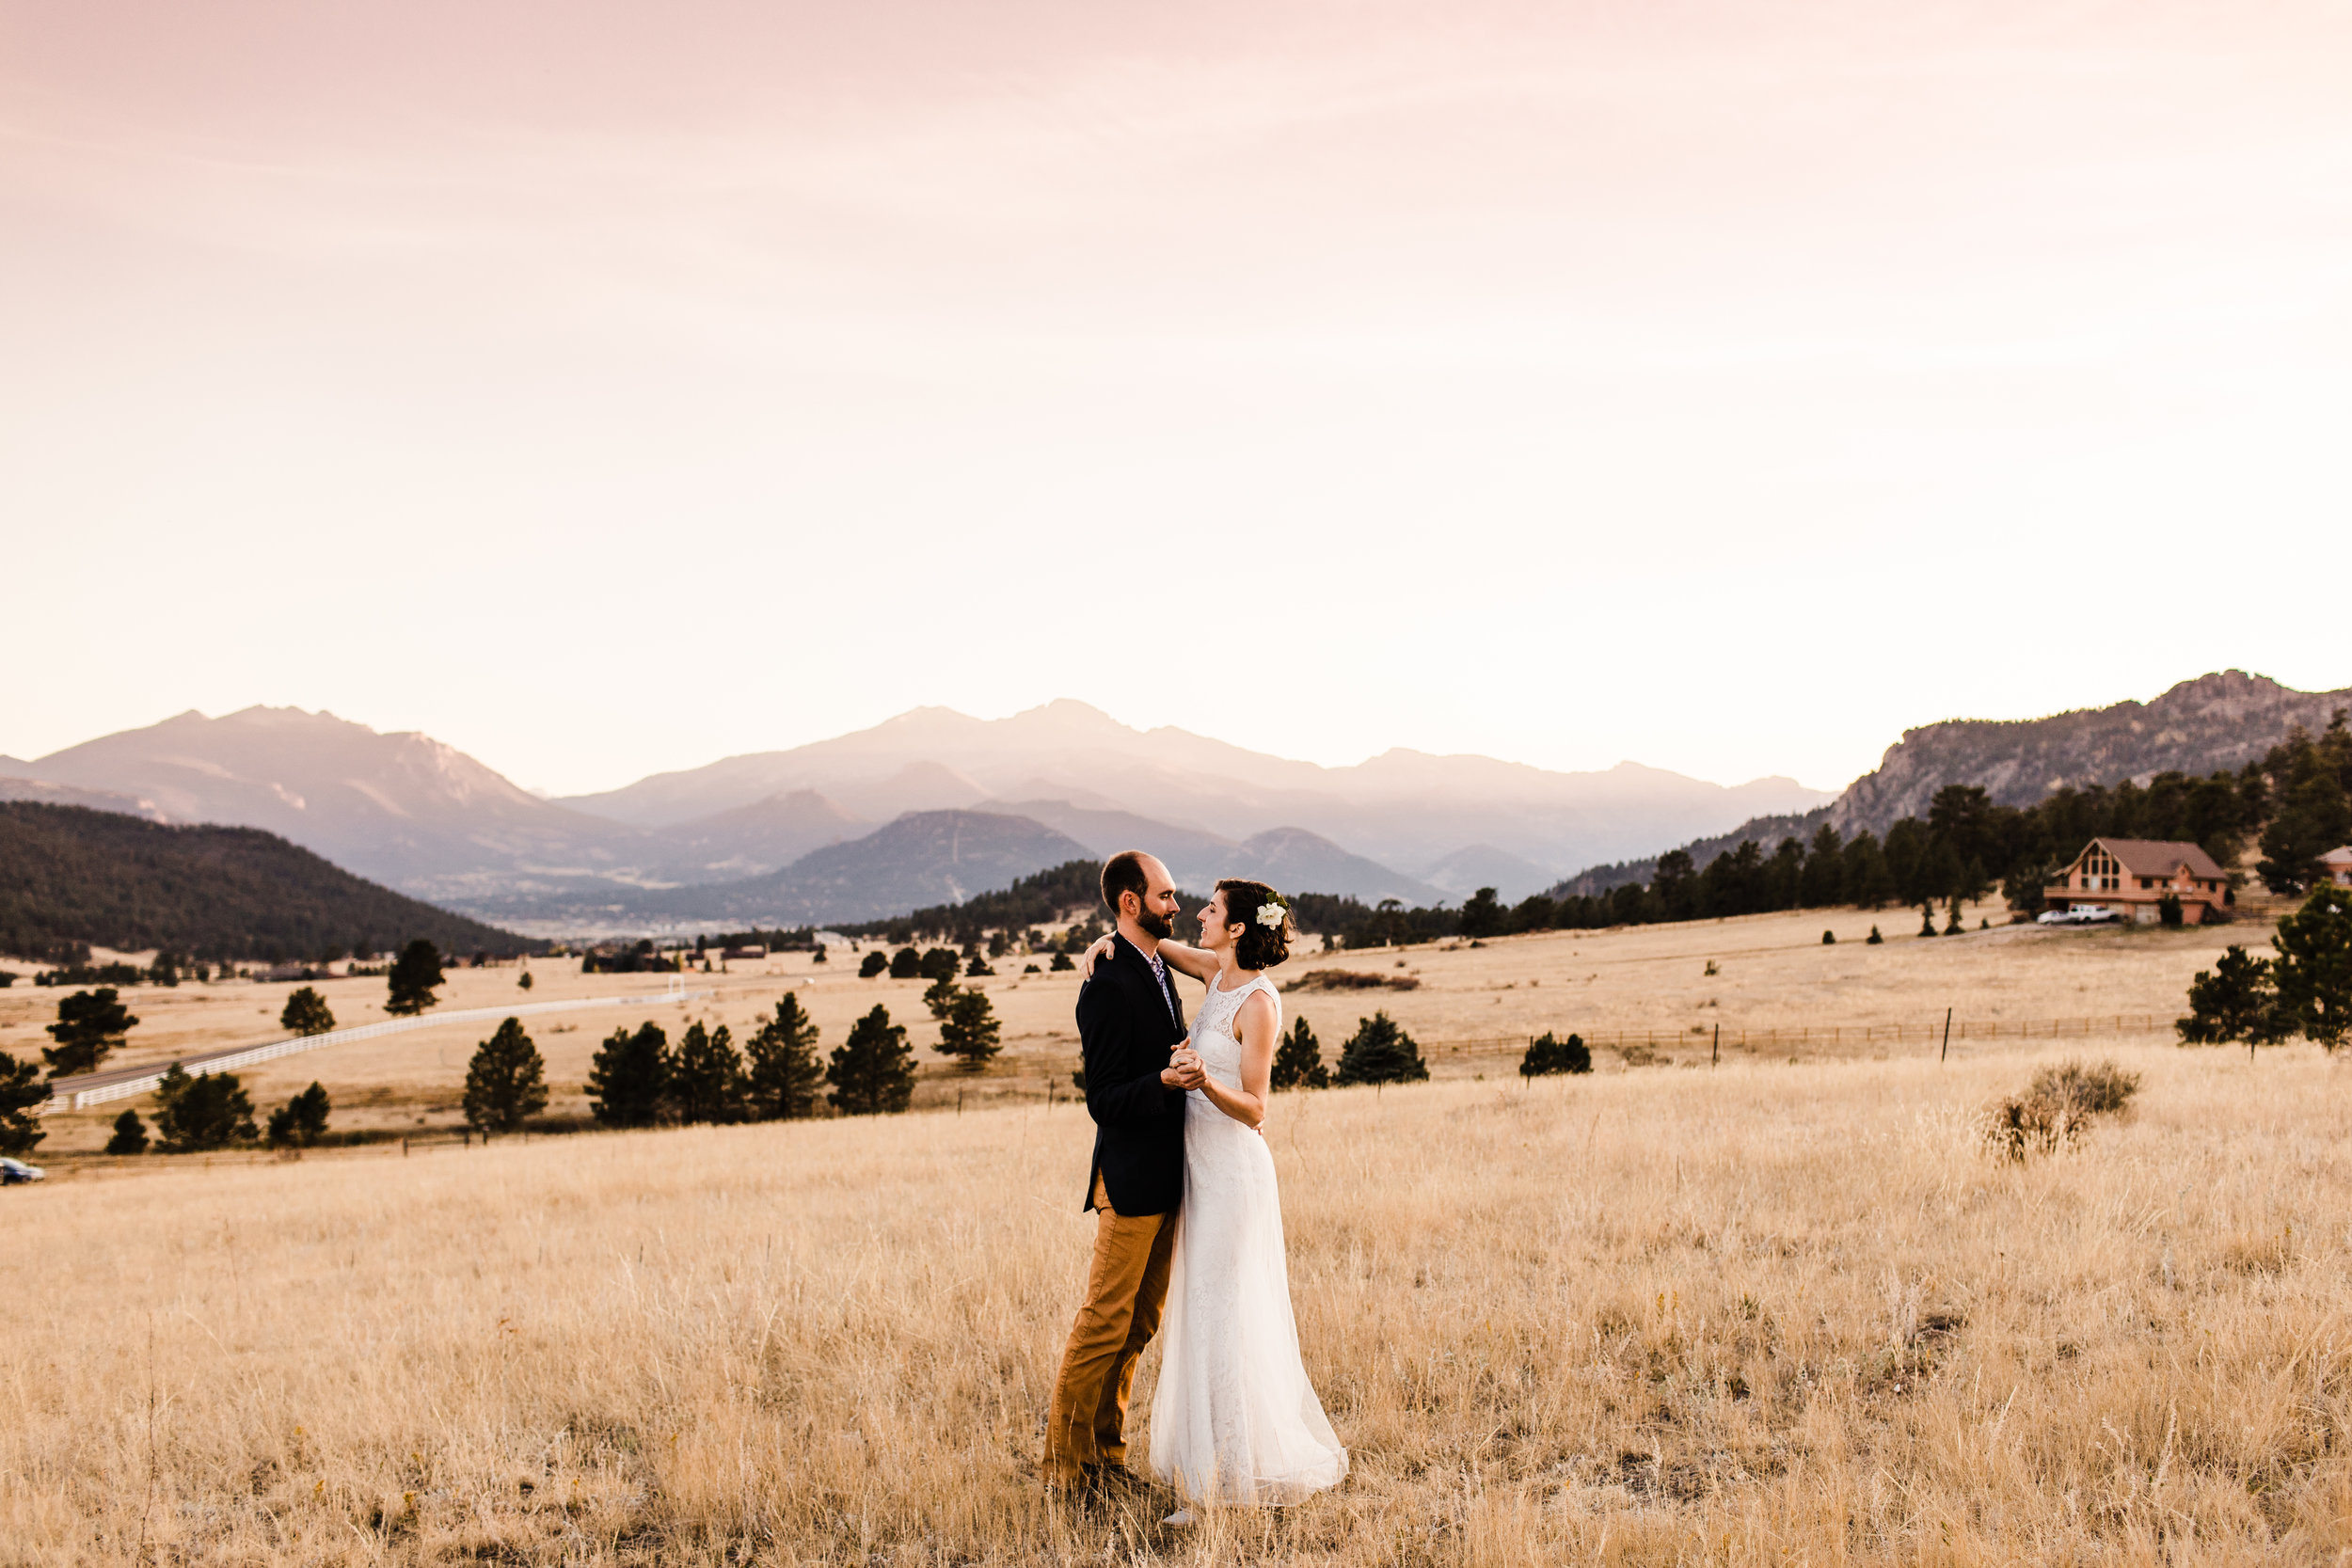 Adventure Wedding in the mountains of Estes Park | | Colorado mountain wedding photographers